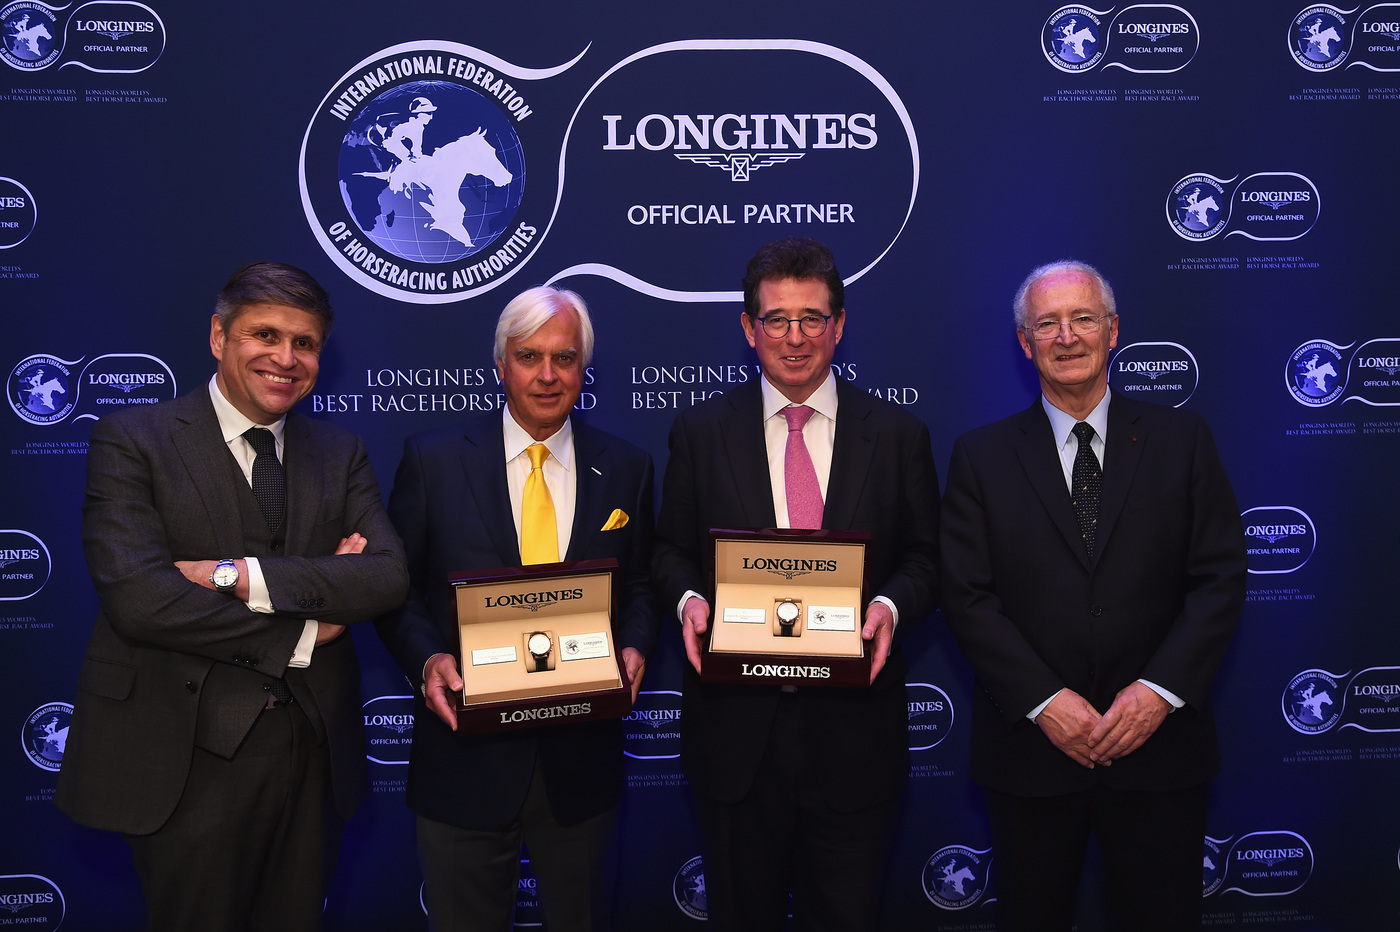 Longines Flat Racing Event: Arrogate crowned the Longines World's Best Racehorse for the second year in a row, Qatar Prix de l'Arc de Triomphe named Longines World's Best Horse Race for the second time 2